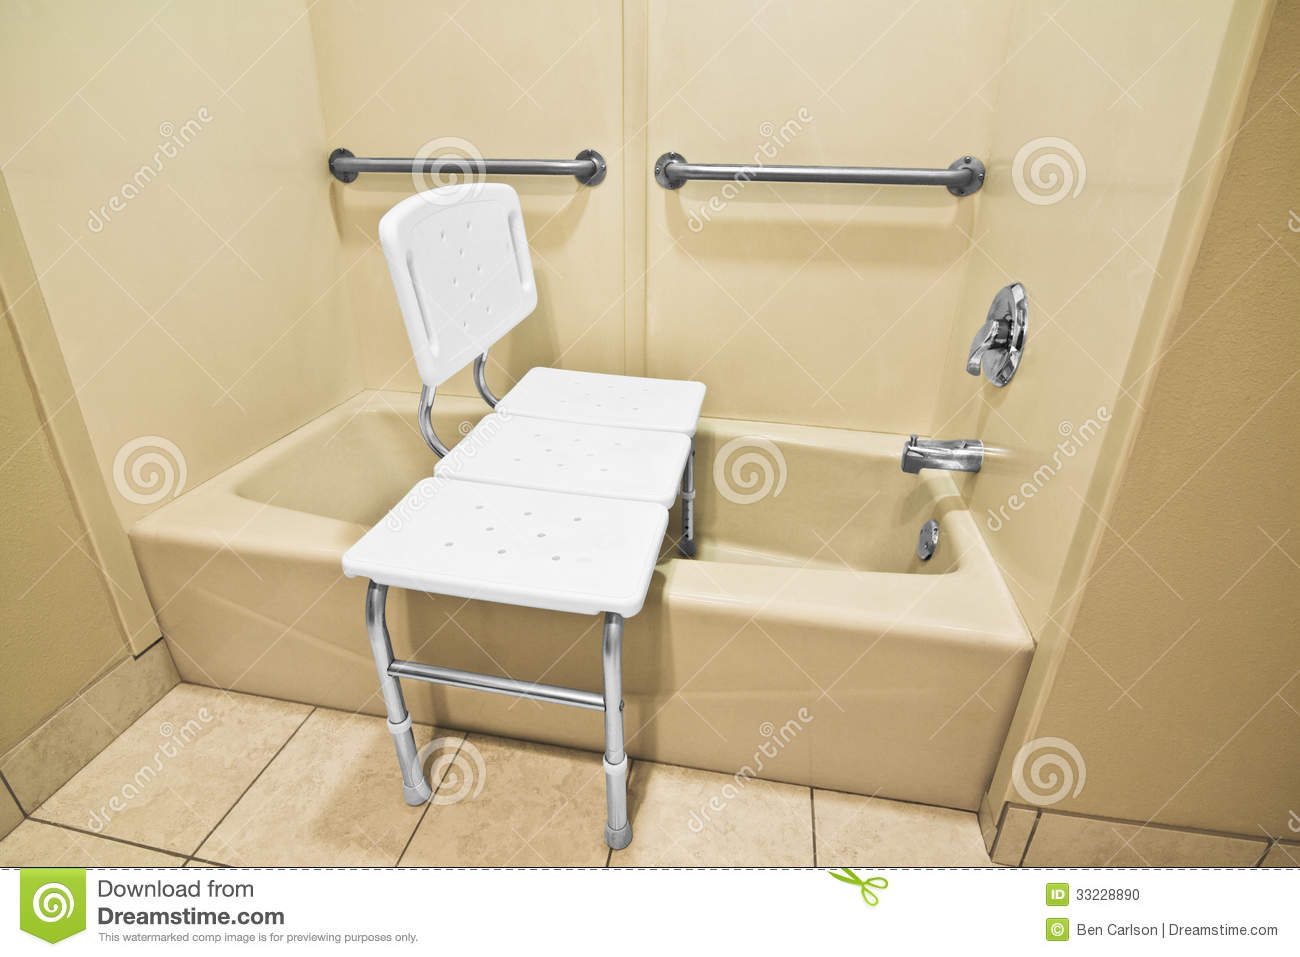 Handicap bathing chair stock photo image 33228890 Handicapped wheelchair